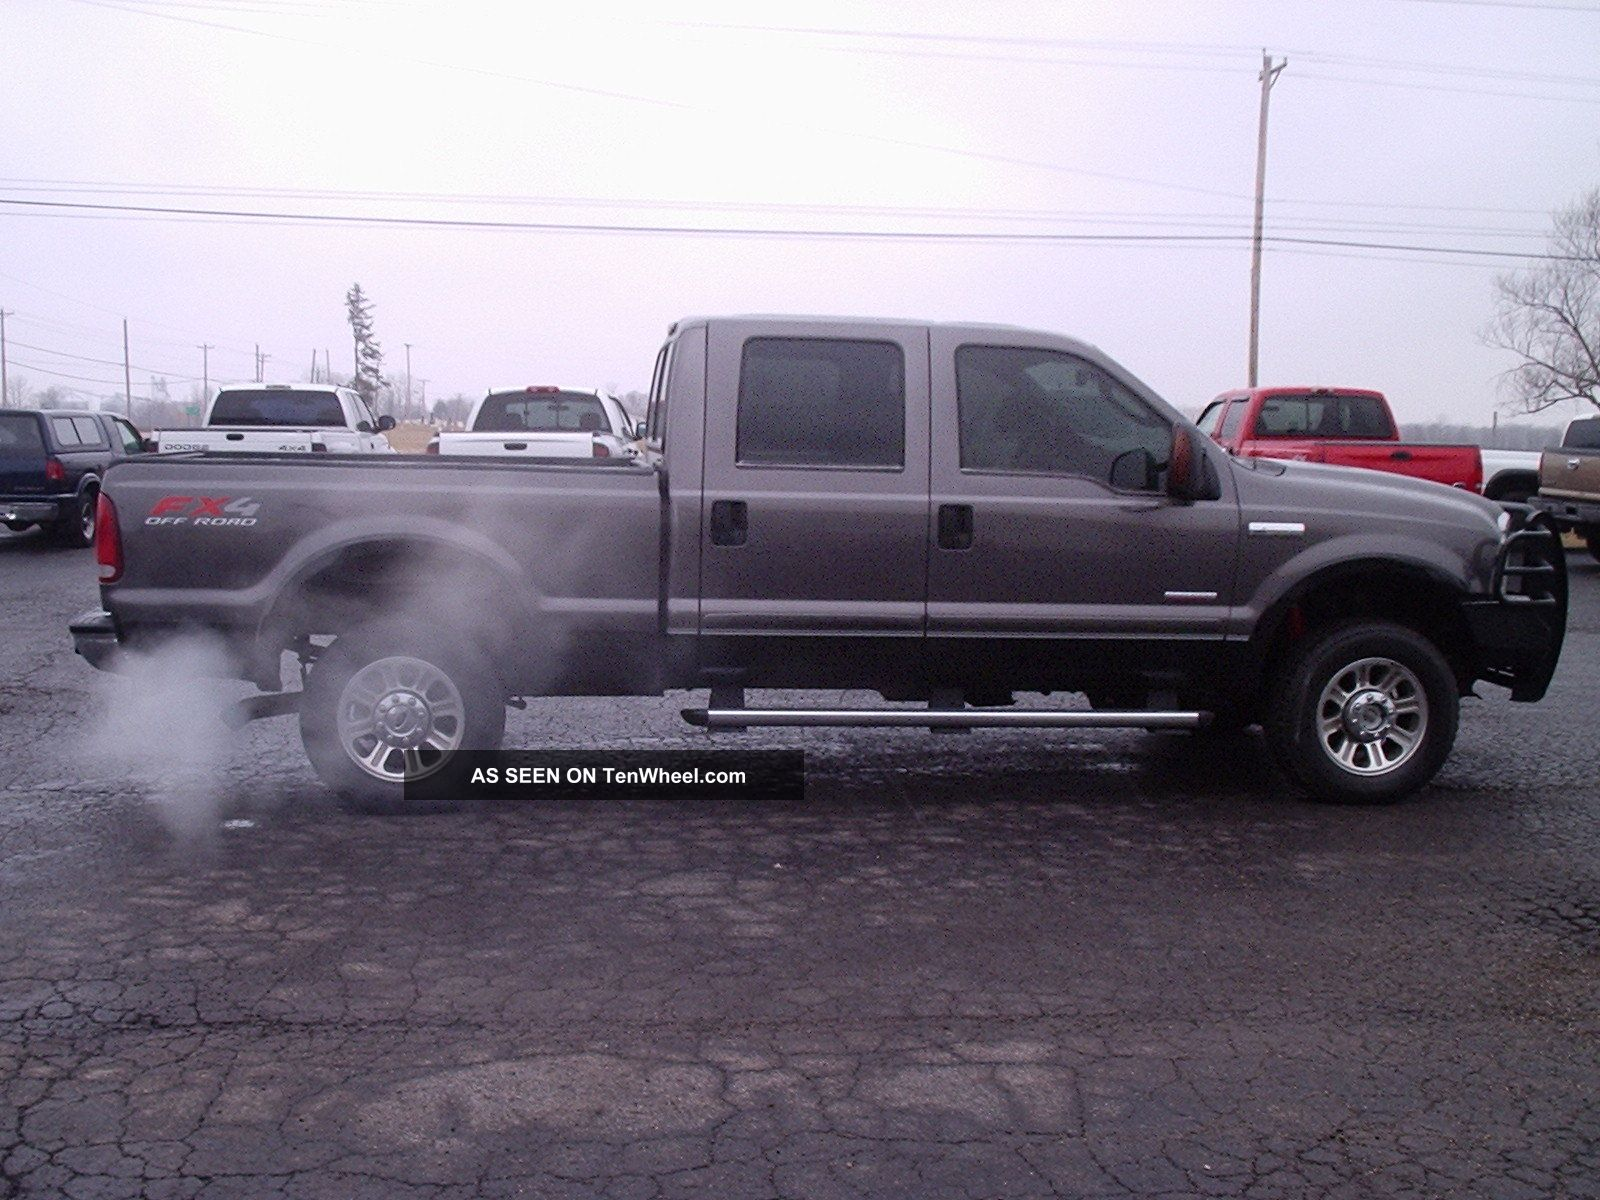 hight resolution of 2006 ford f250 sd lariat crew cab 4x4 6 0 powerstroke turbo diesel automatic